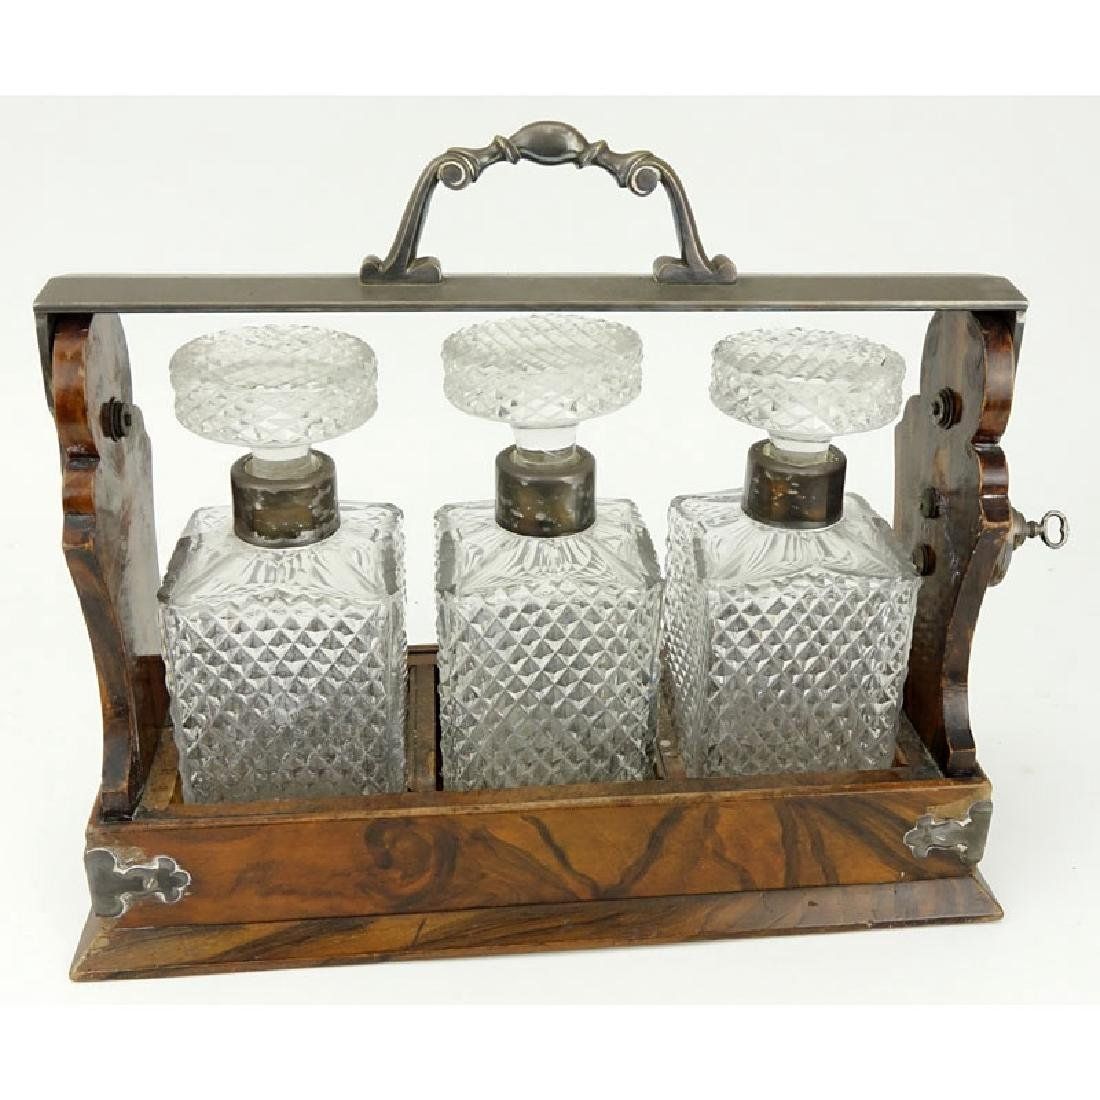 Betjemann's Patent Tantalus. 3 cut crystal decanters in